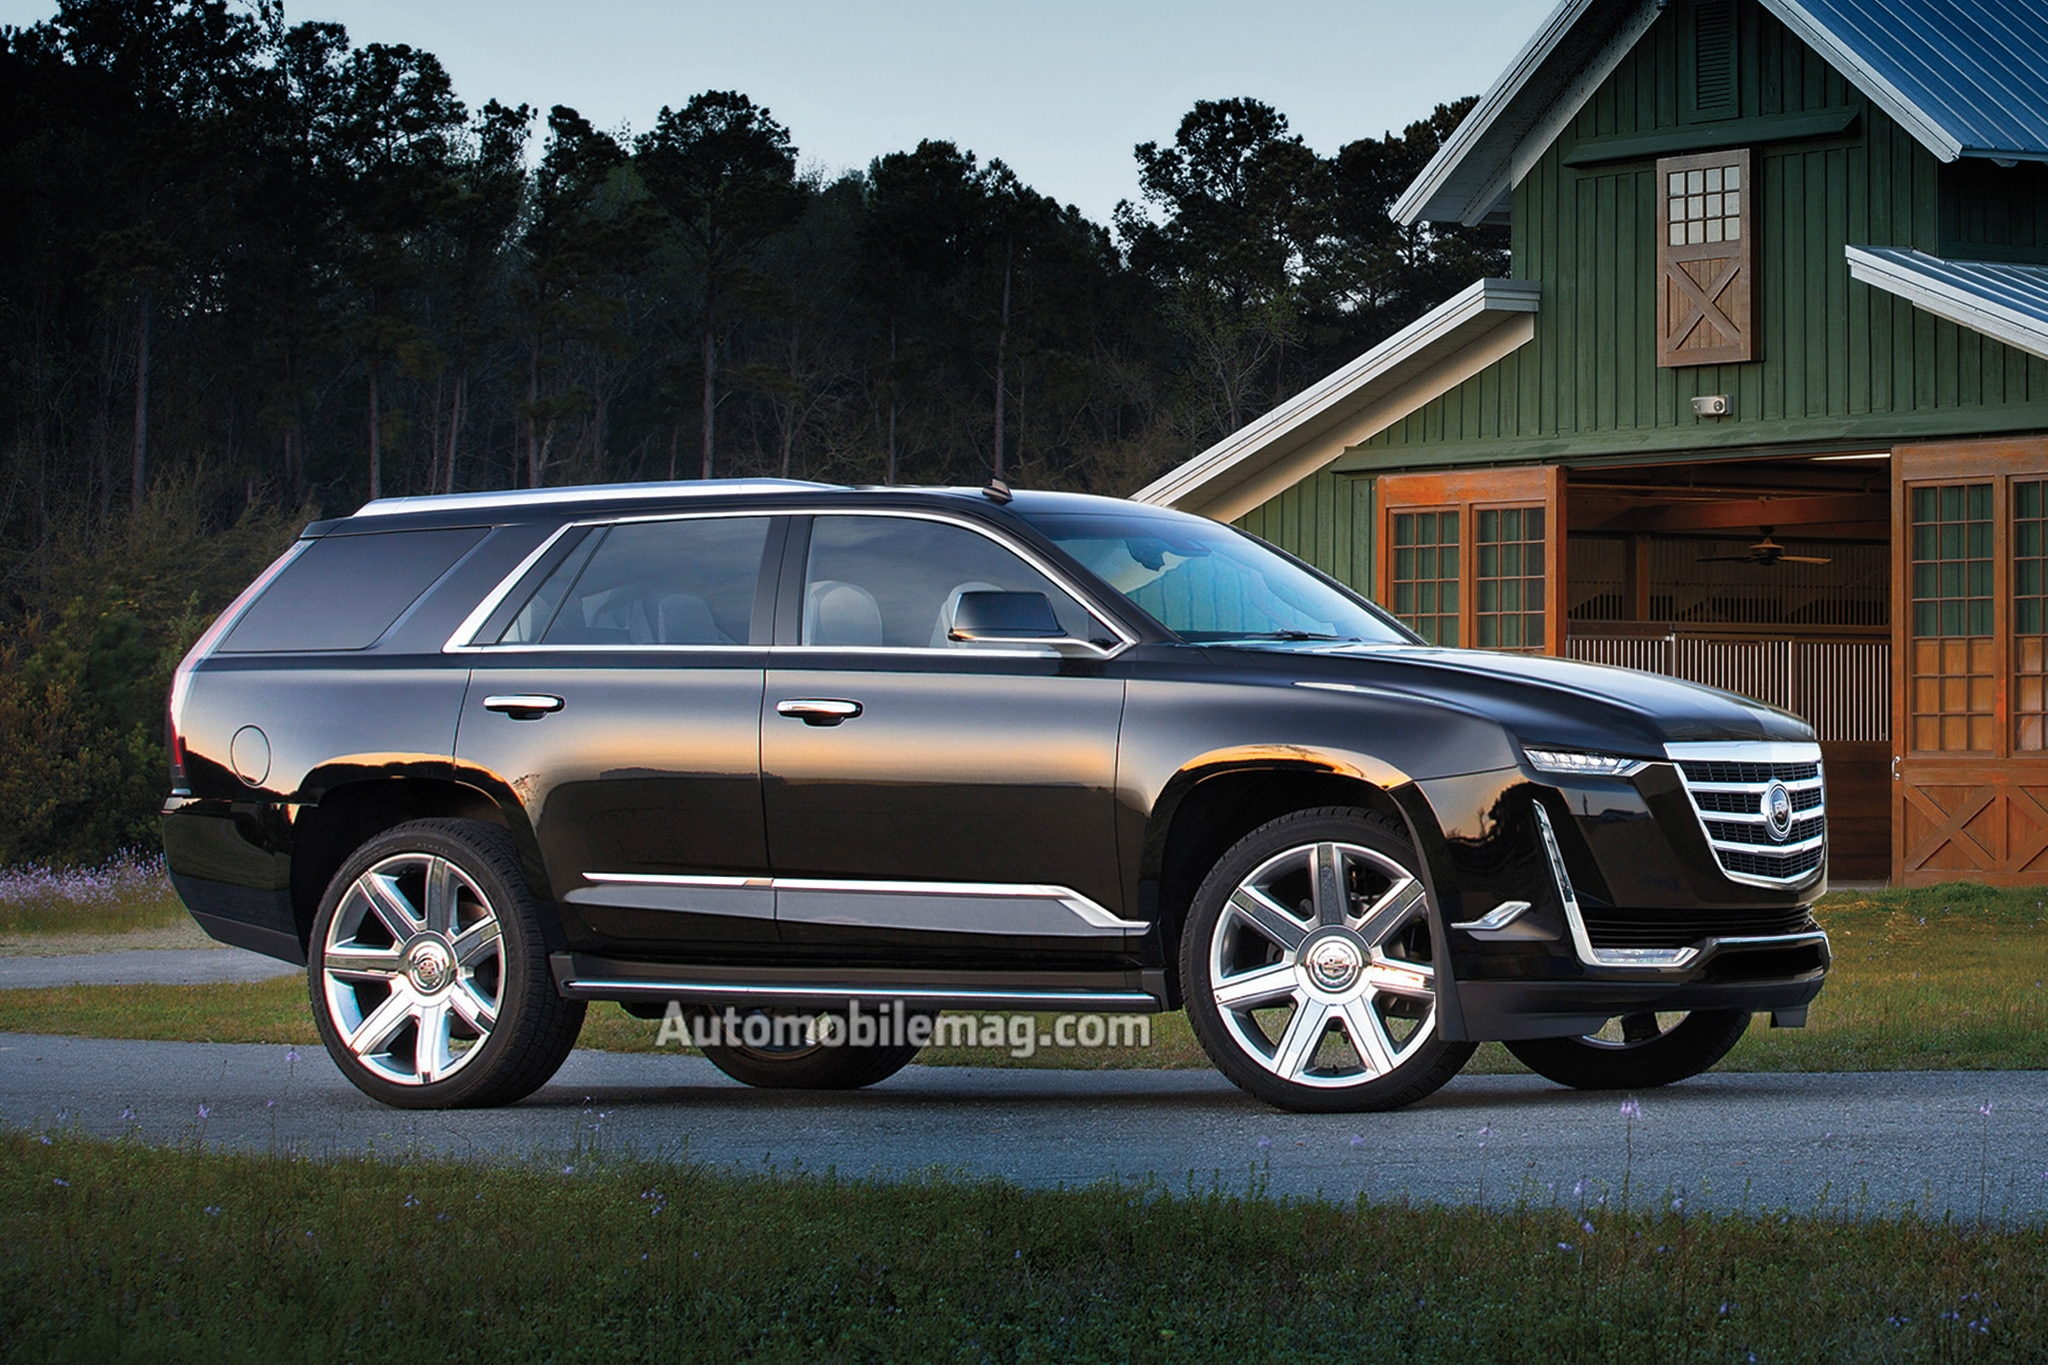 62 All New 2020 Cadillac Escalade V Ext Esv Pictures